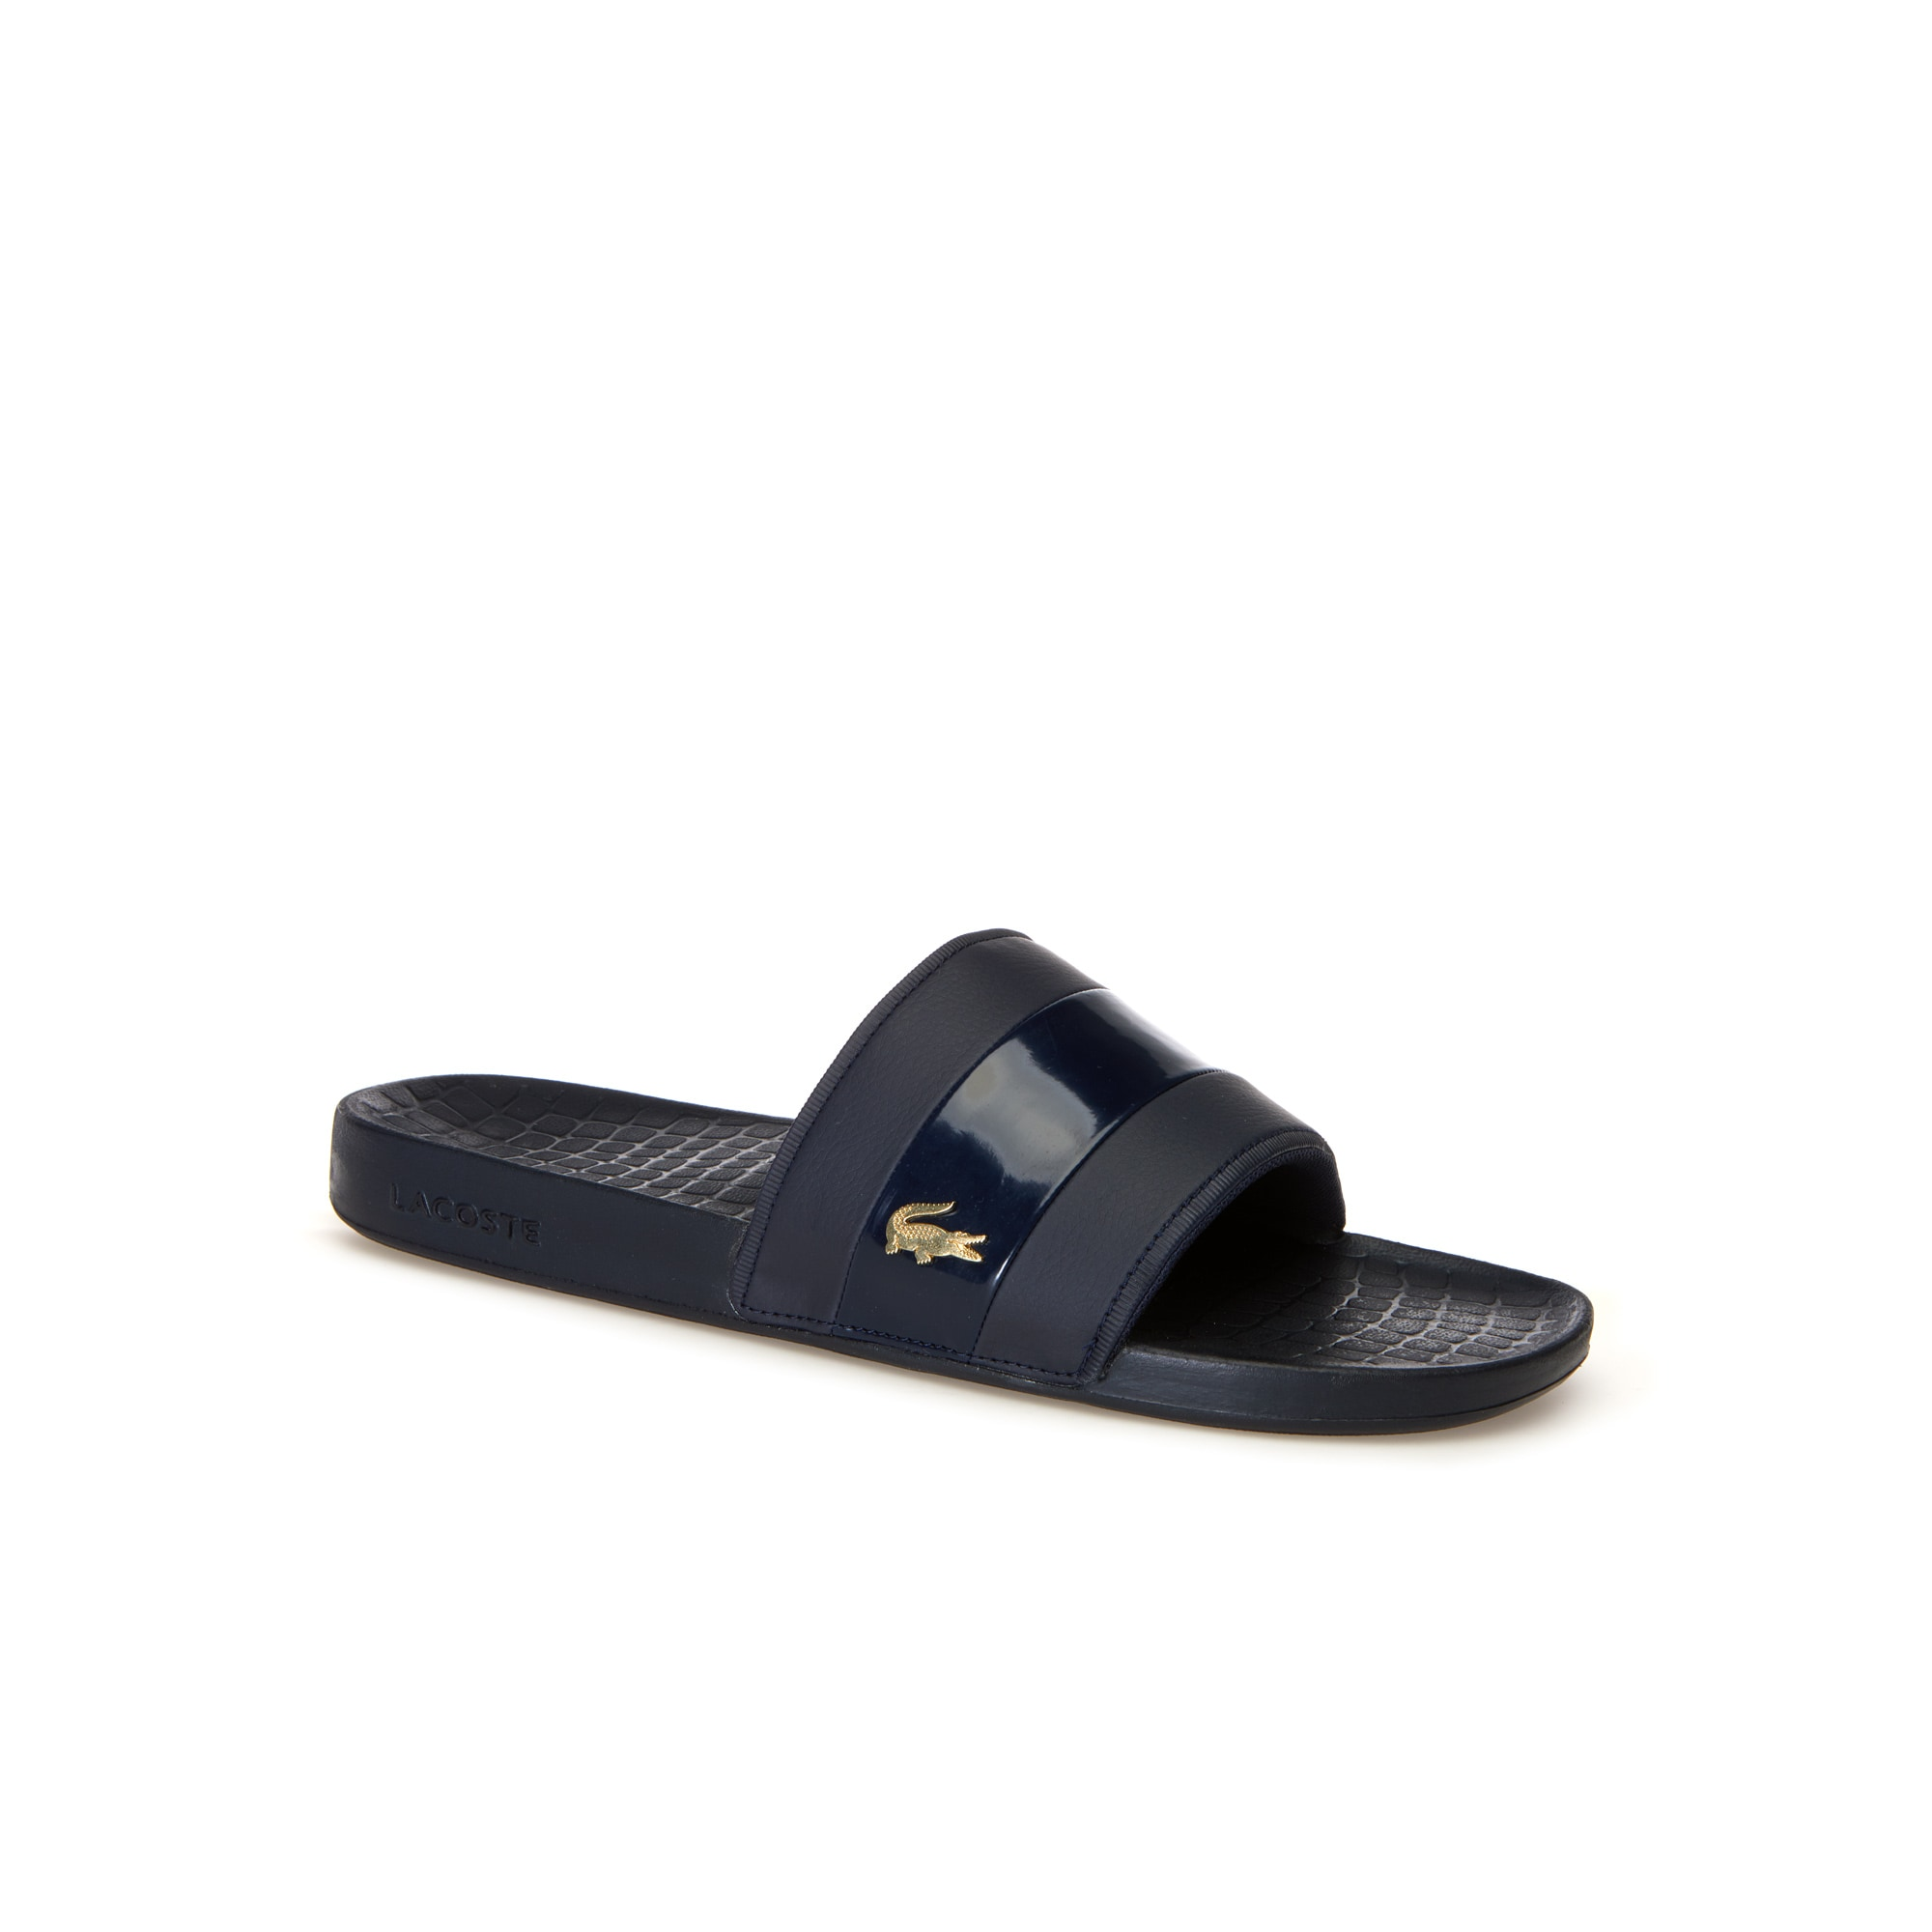 Men's Fraisier Leather Slides